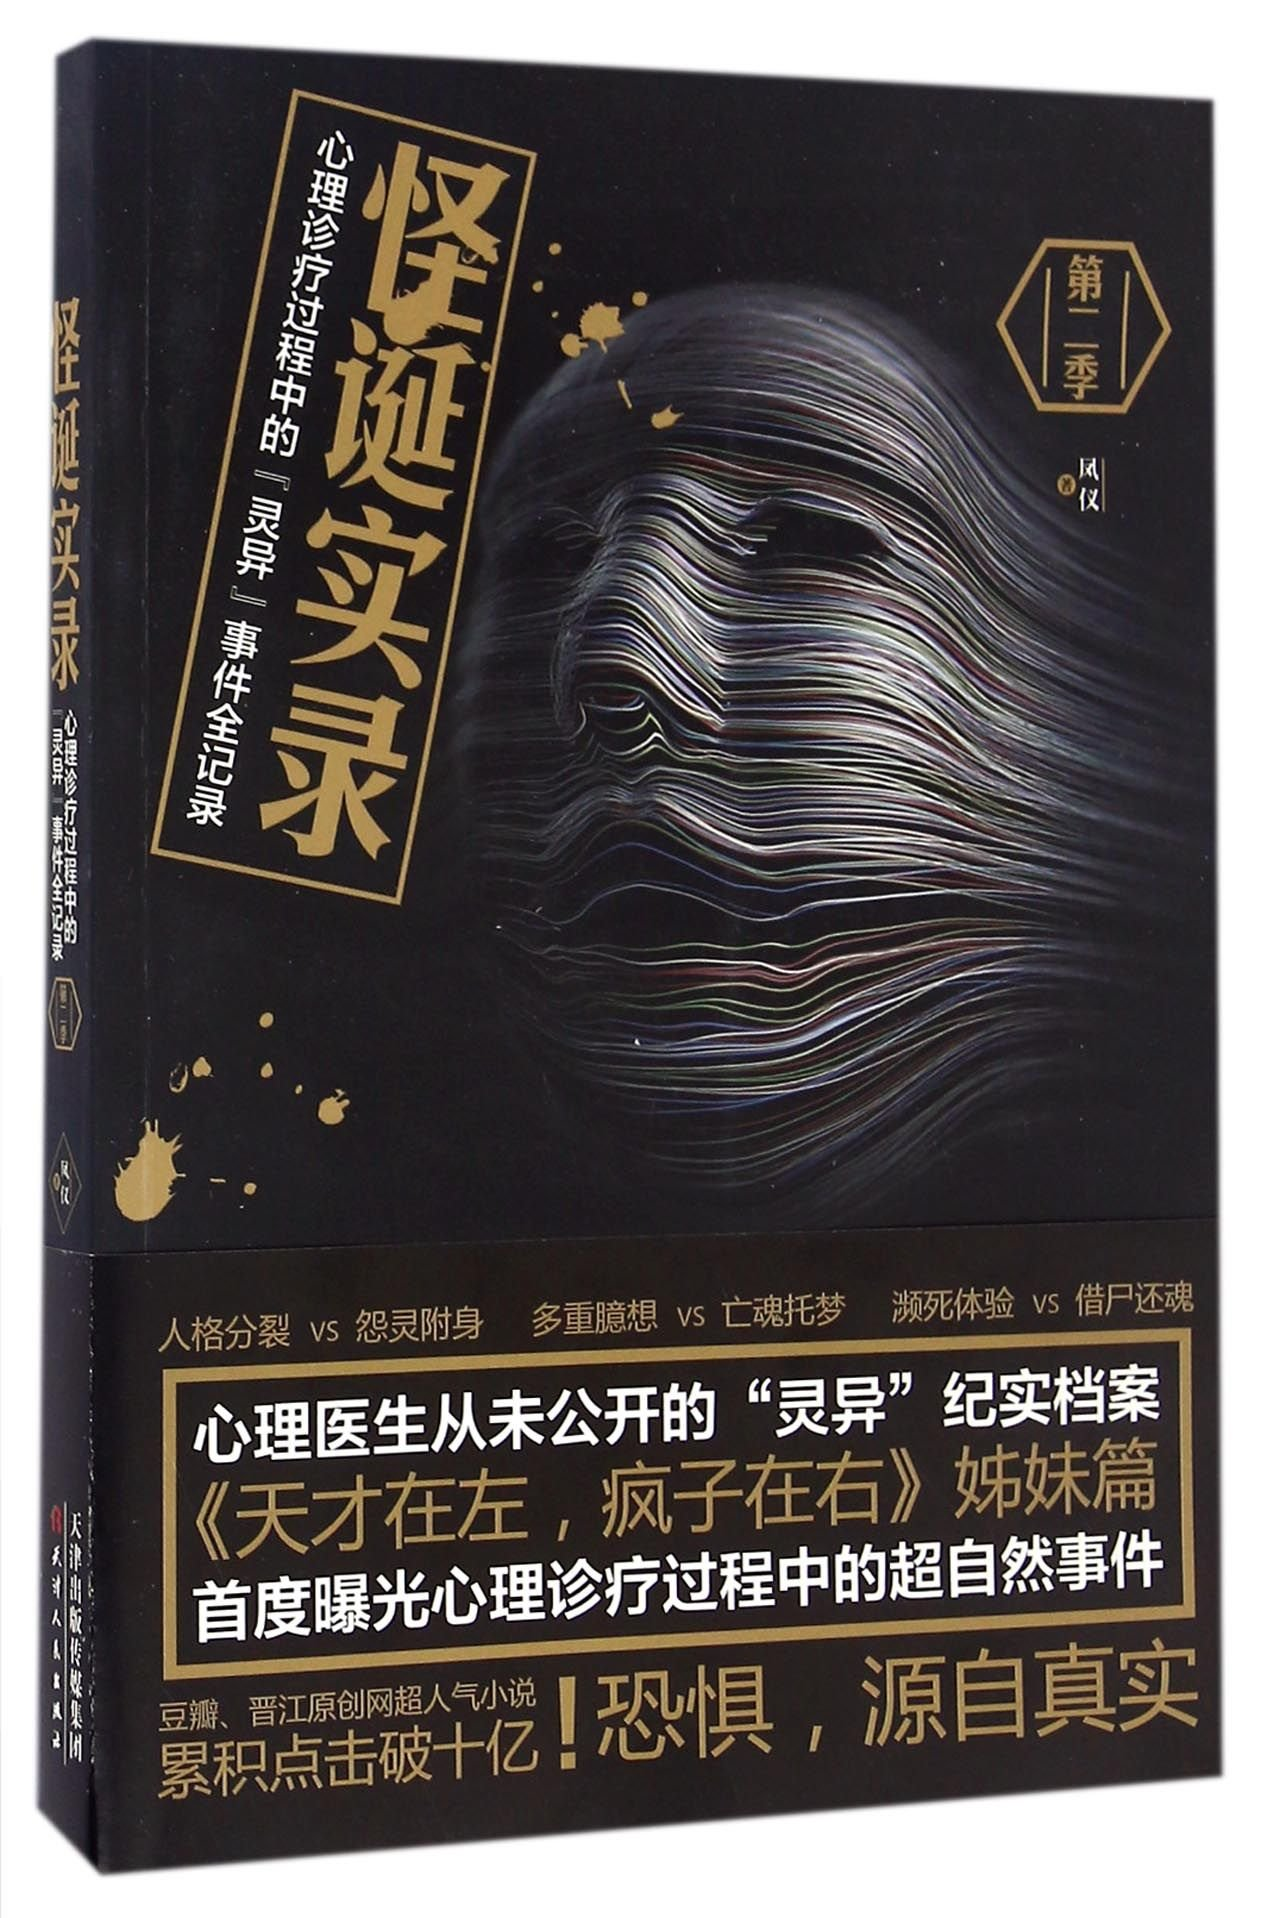 Real Weird Stories (Season 2) (Chinese Edition) (Chinese) Paperback –  November 1, 2016